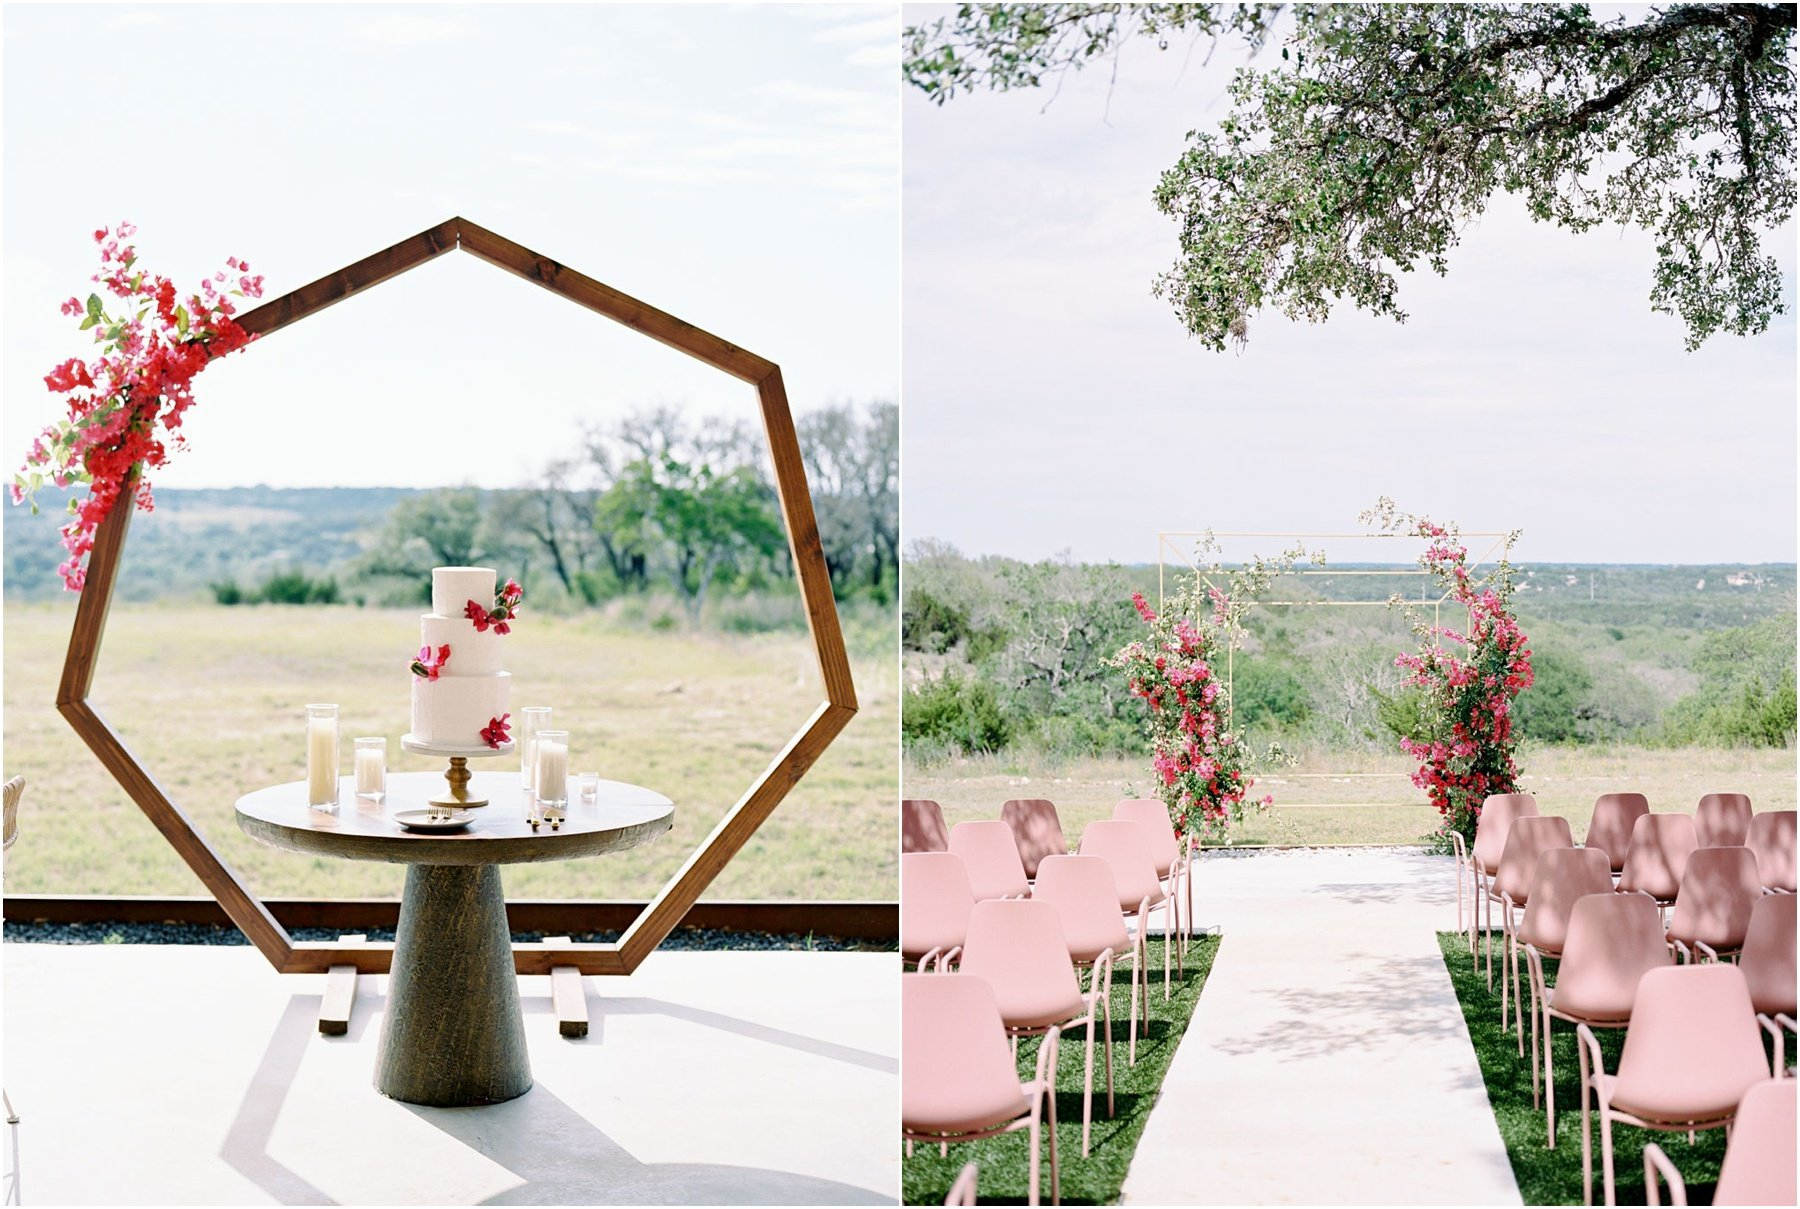 wedding ceremony set up with blush chairs and a bougainvillea floral arch